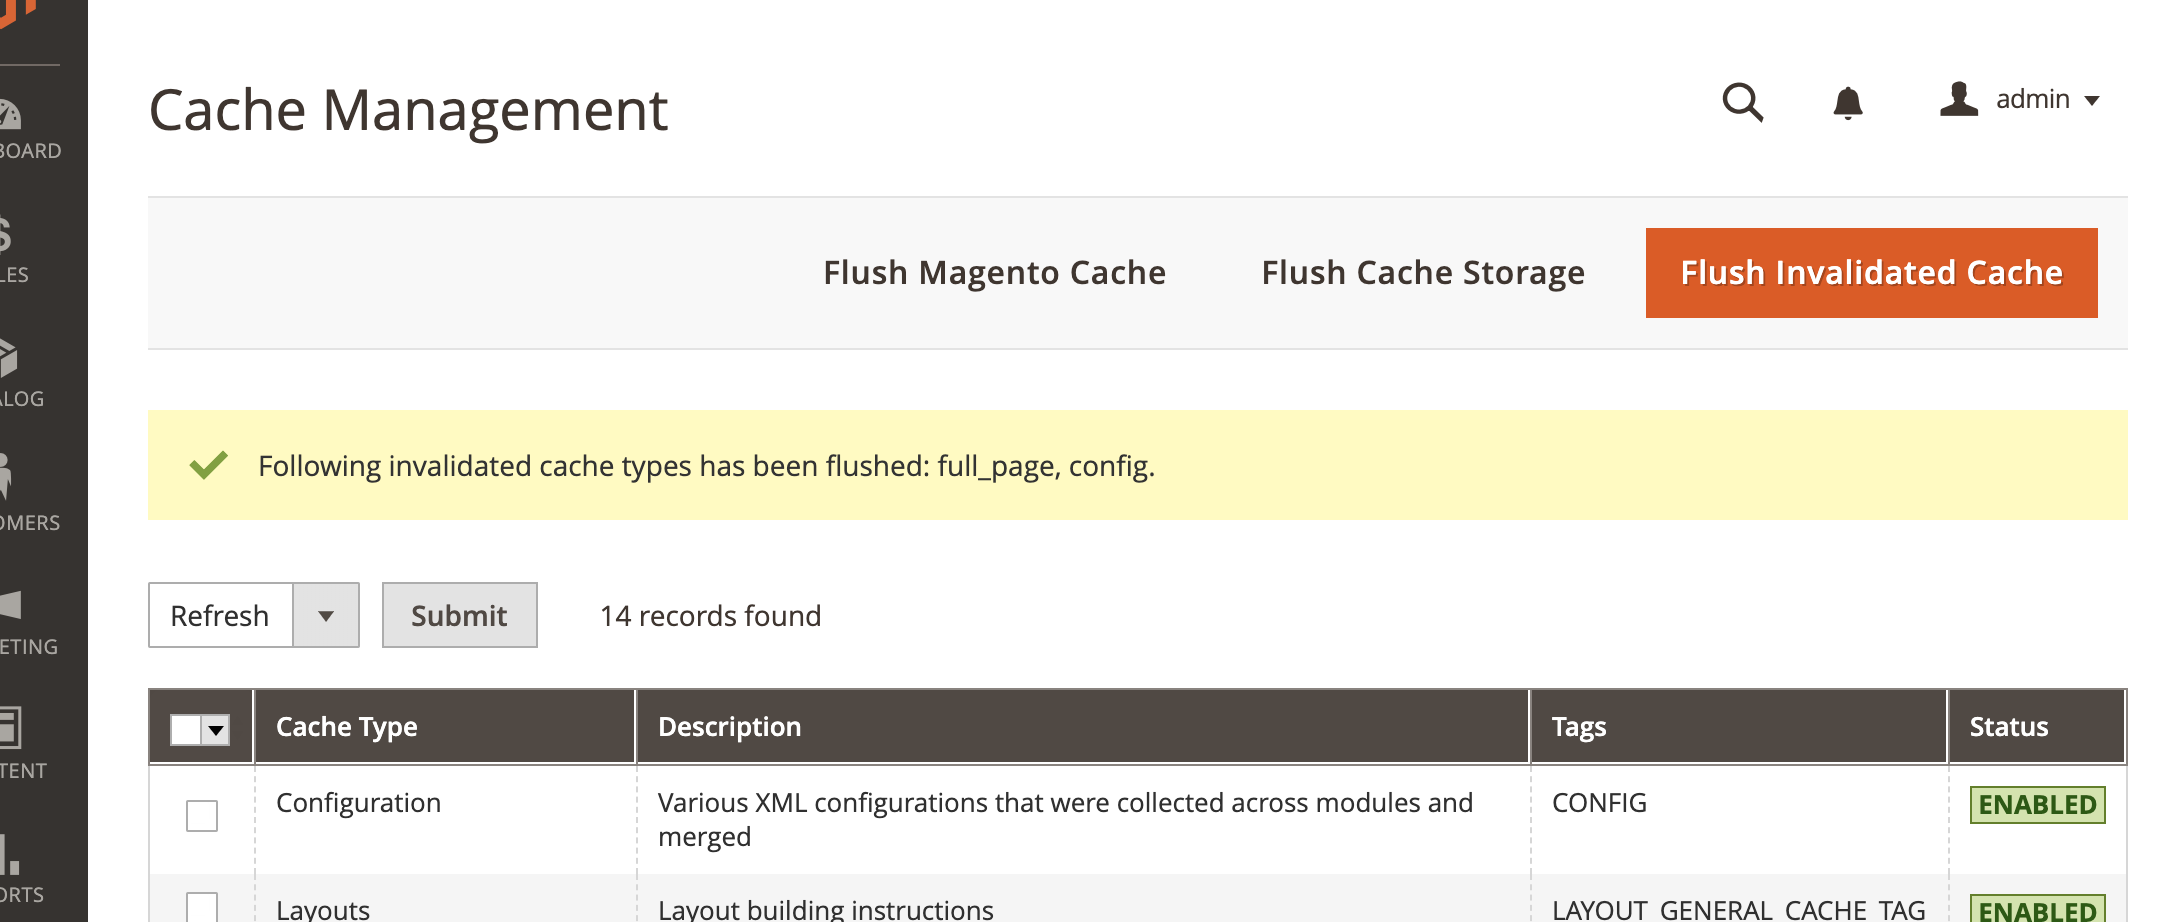 Flush invalidated cache button